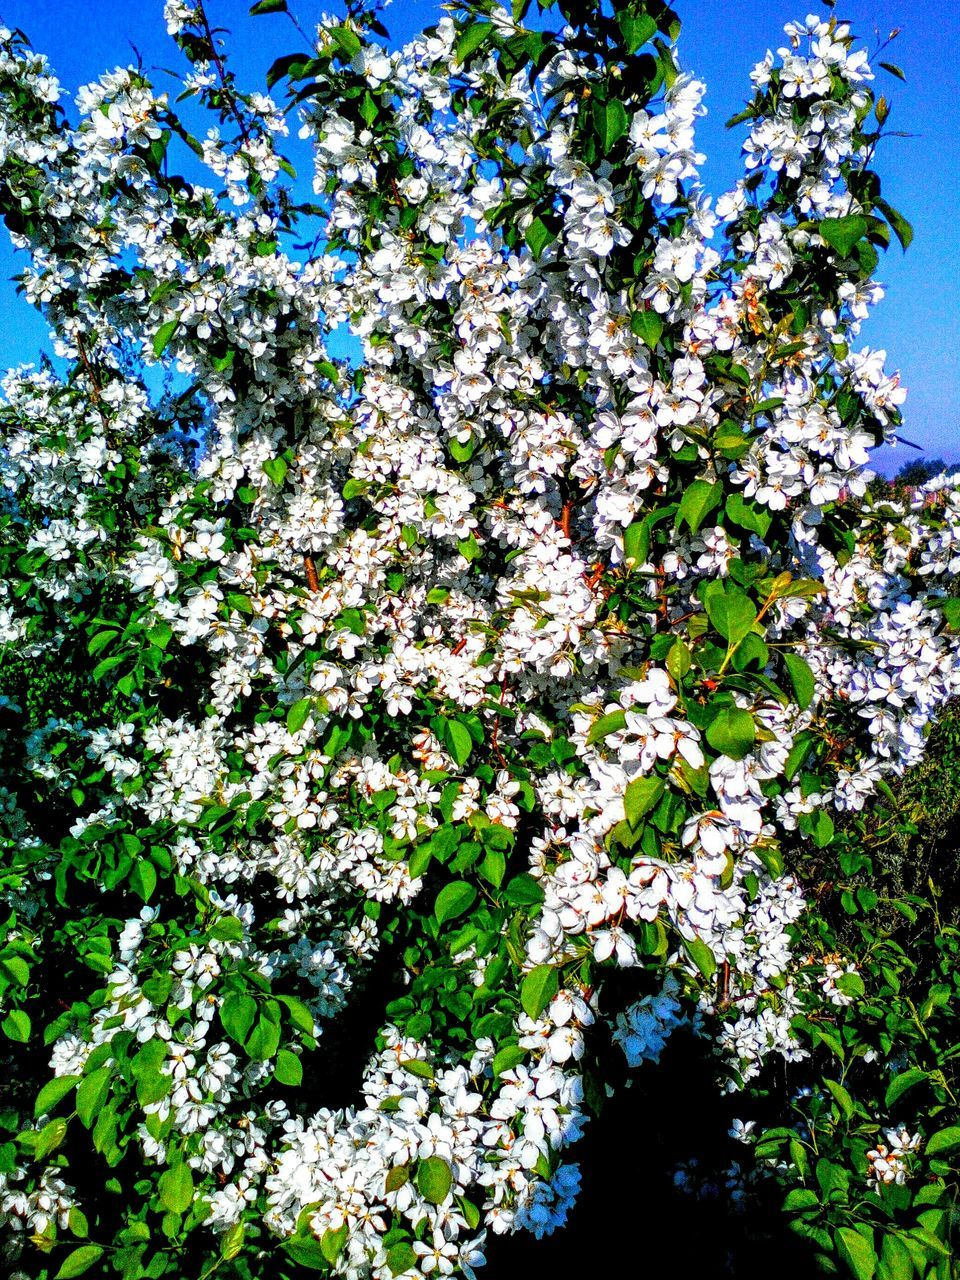 flower, growth, blossom, nature, tree, fragility, springtime, beauty in nature, botany, apple blossom, low angle view, branch, freshness, spring, day, outdoors, no people, flower head, close-up